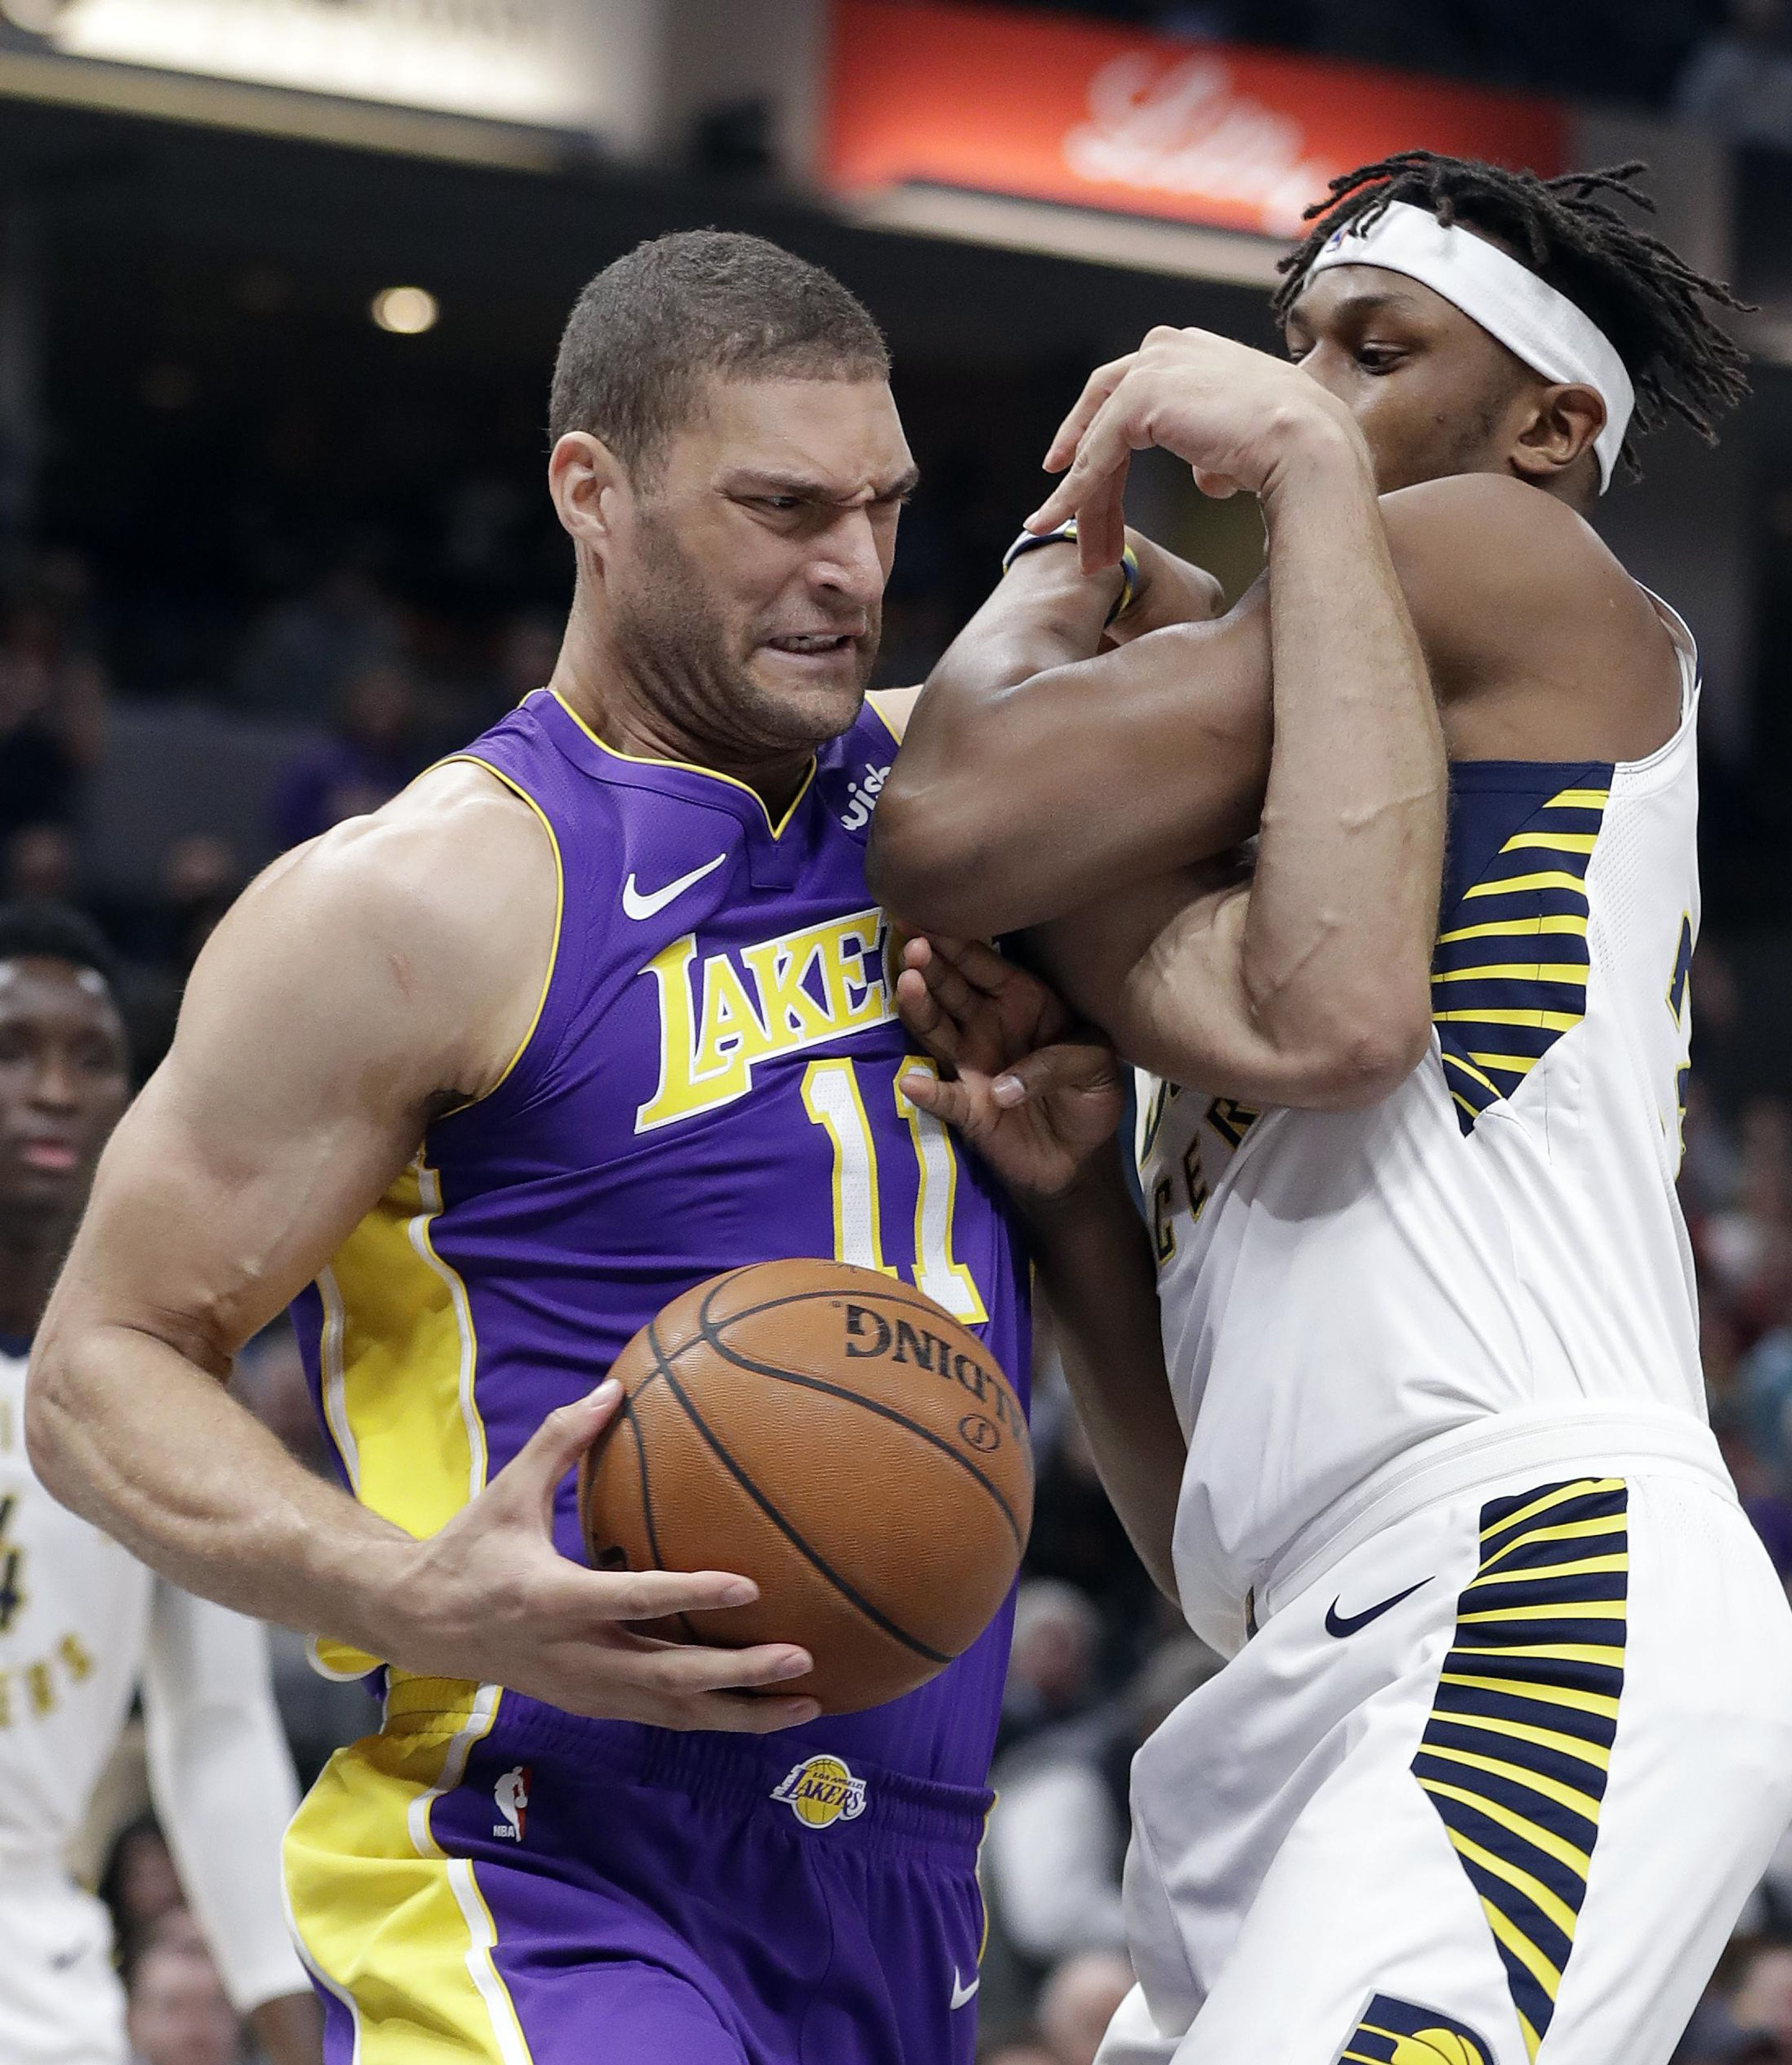 Lakers_pacers_basketball_44524_s3555x4096